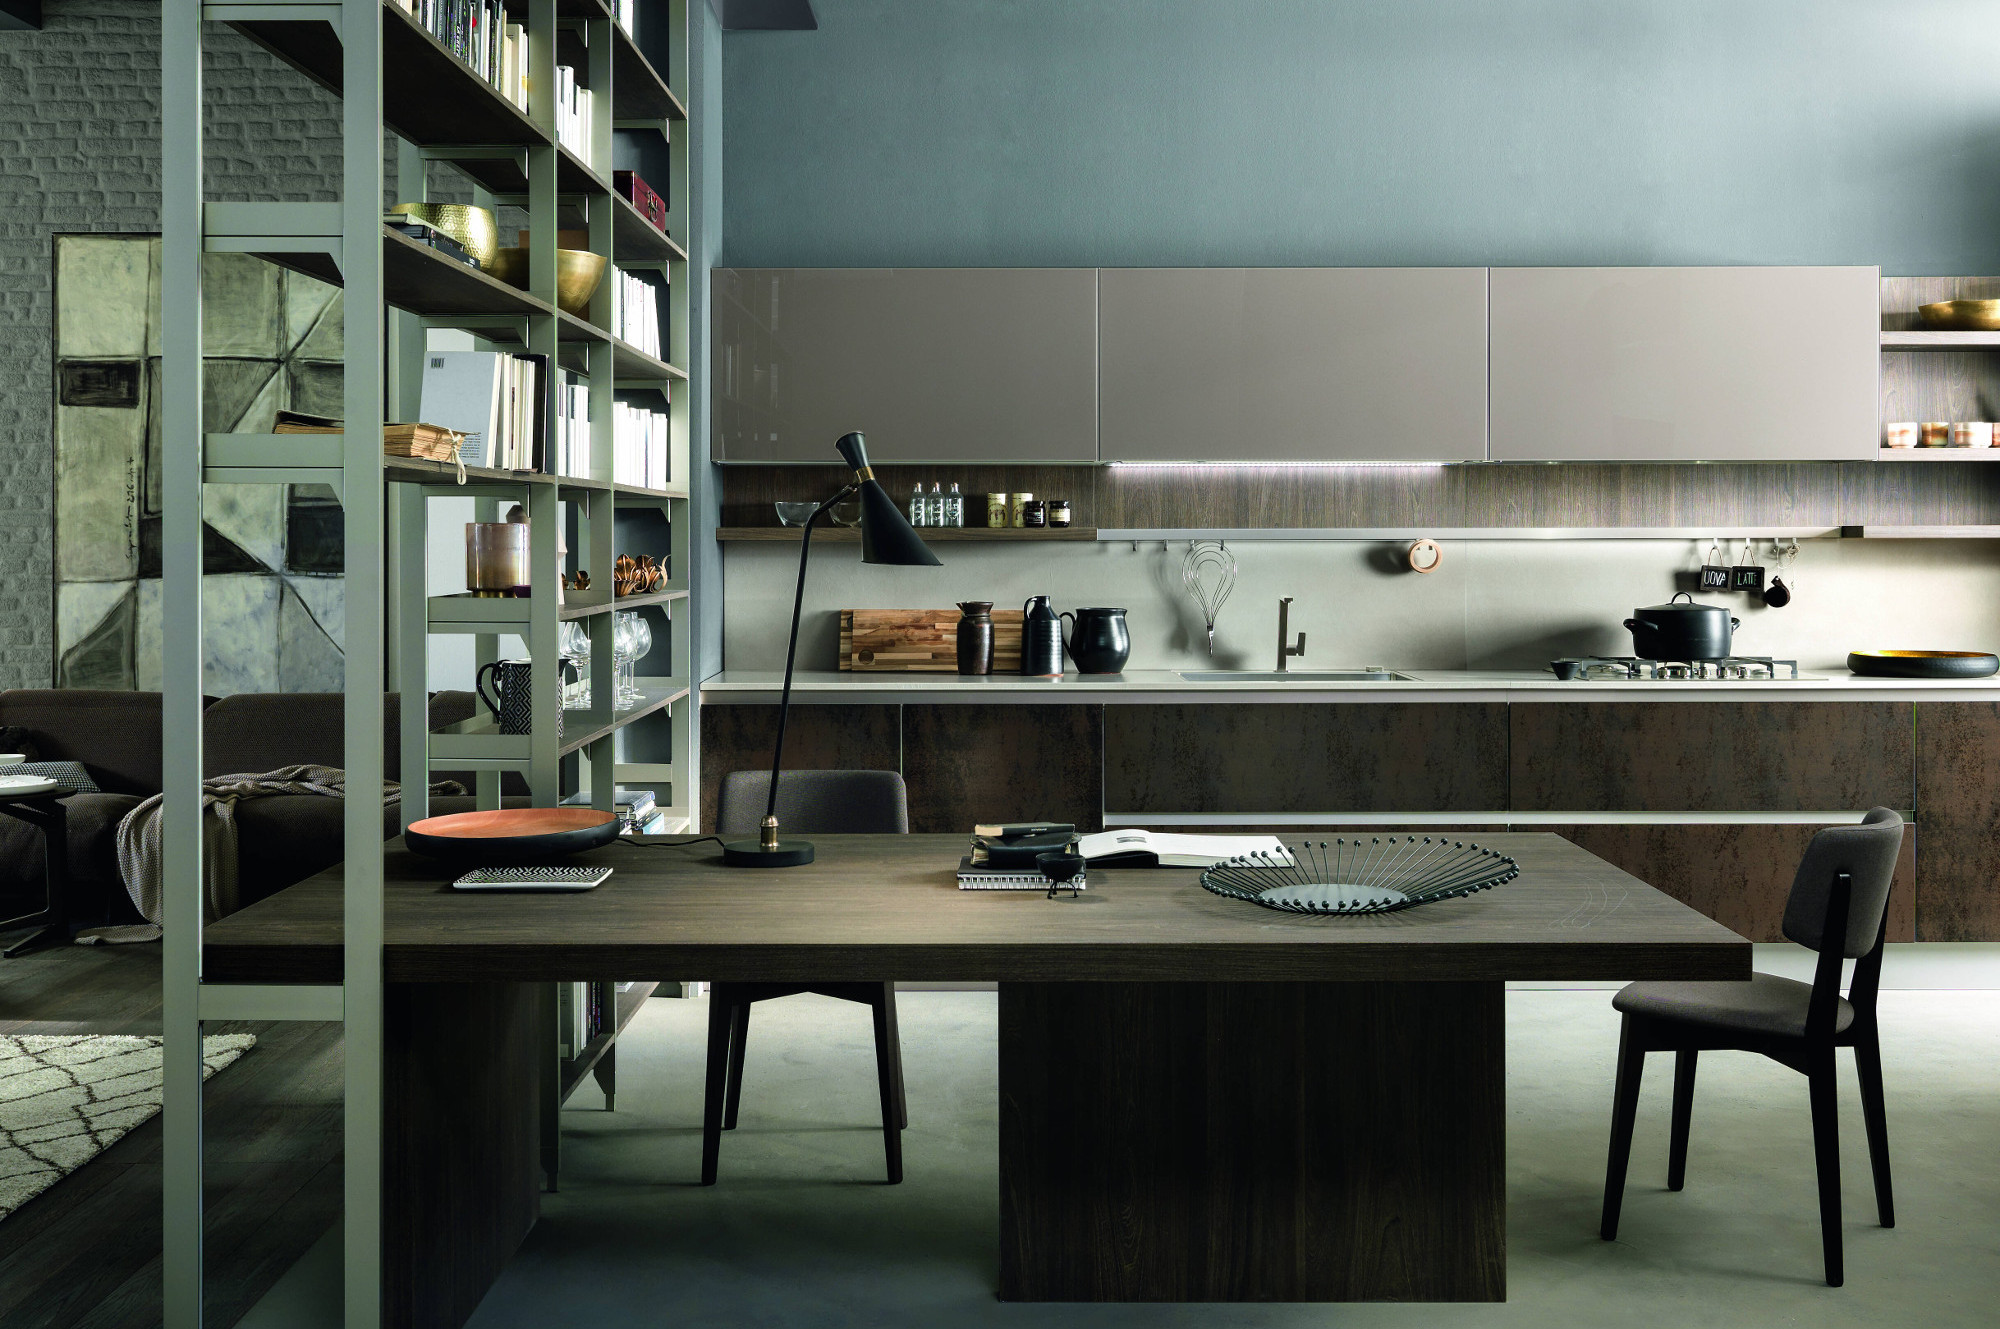 http://www.marinabay.it/wp-content/uploads/2017/06/cucine-firenze-3.jpg